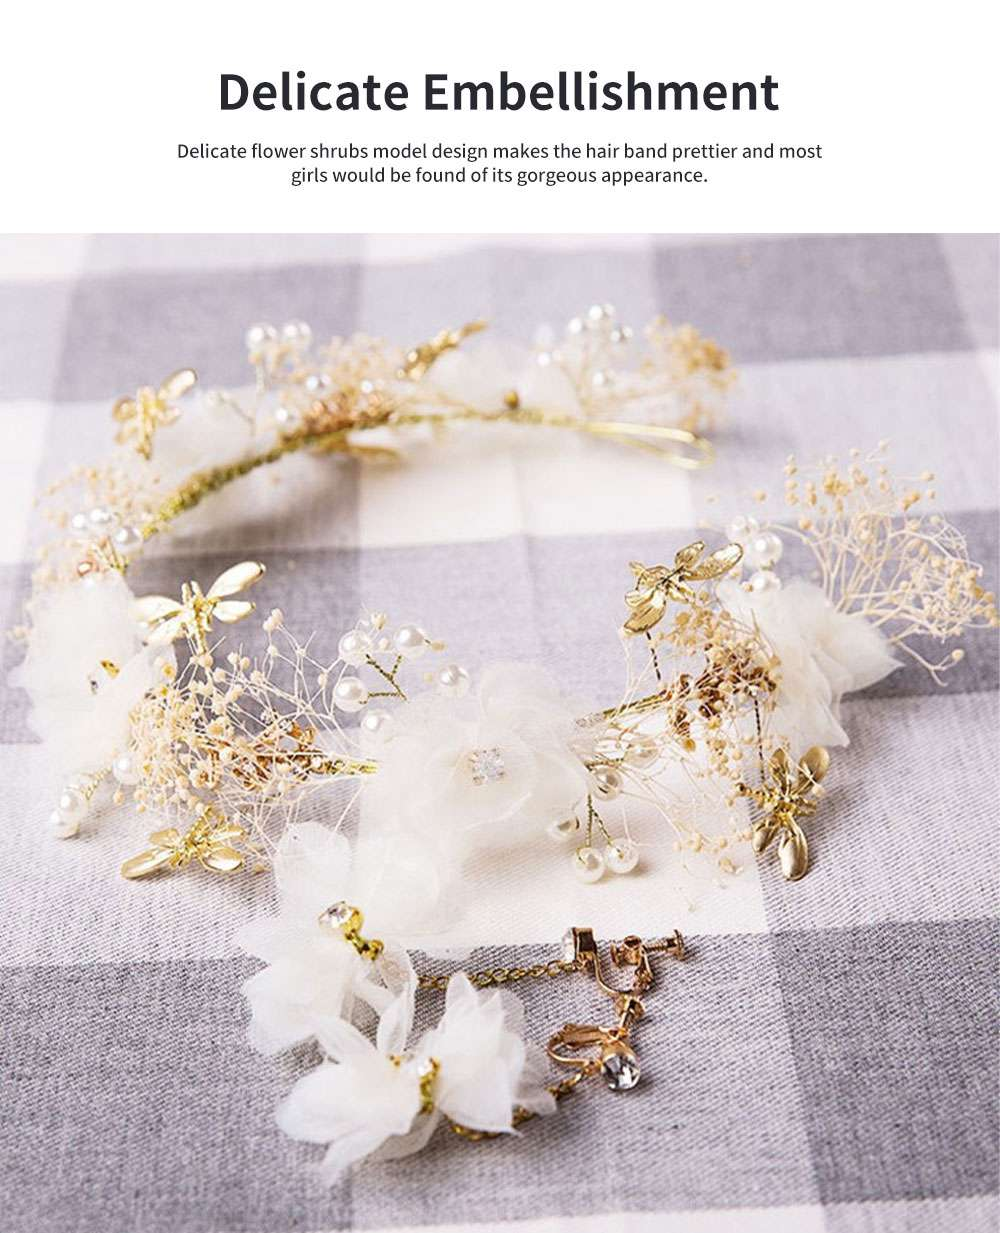 Fancy Flower Bees Model Artificial Pearl Decorative Hair Ornament Delicate Girl Crown Ear Clip Accessories Suit 3PCS 2